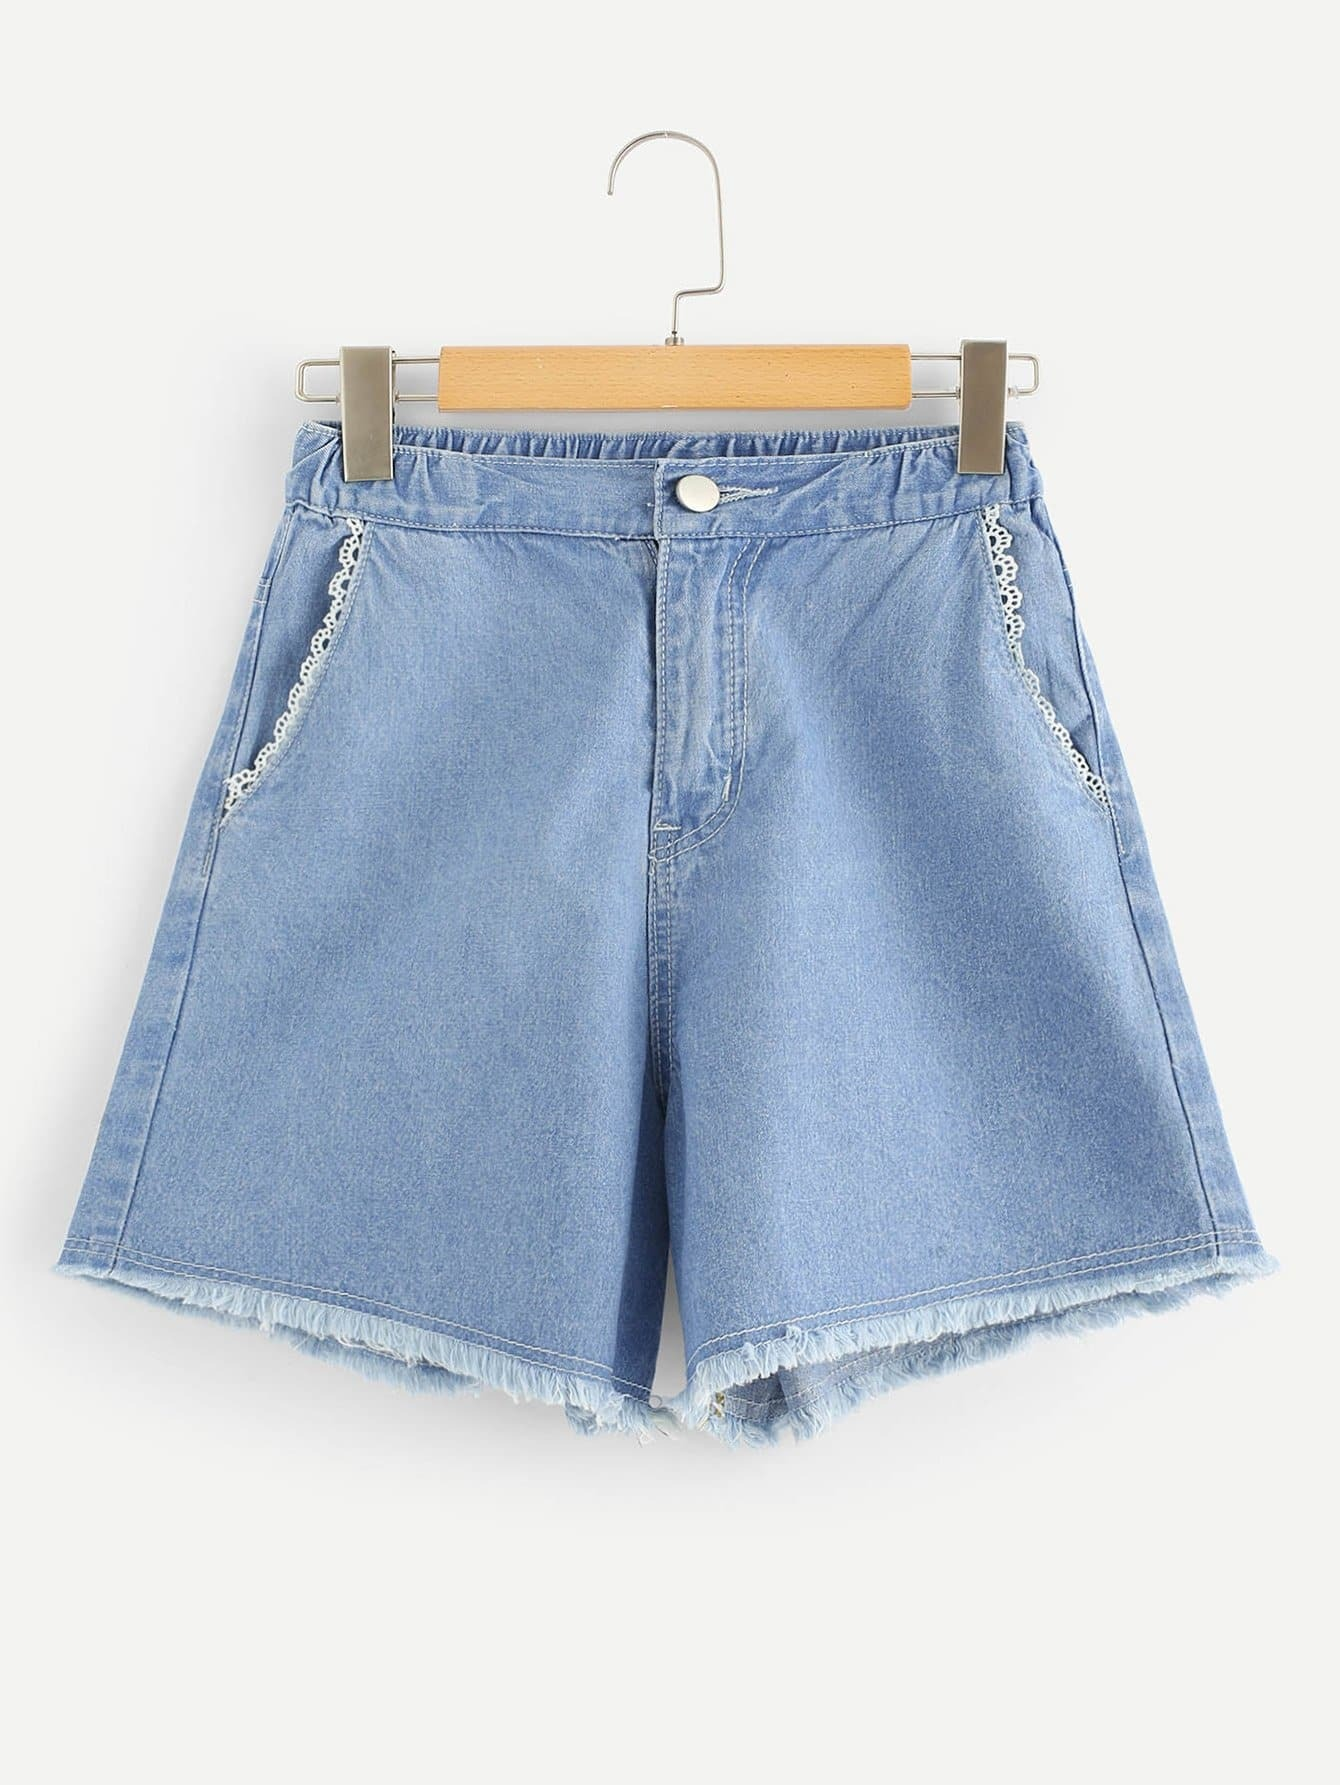 Lace Contrast Frayed Denim Shorts kids contrast lace patchwork denim short